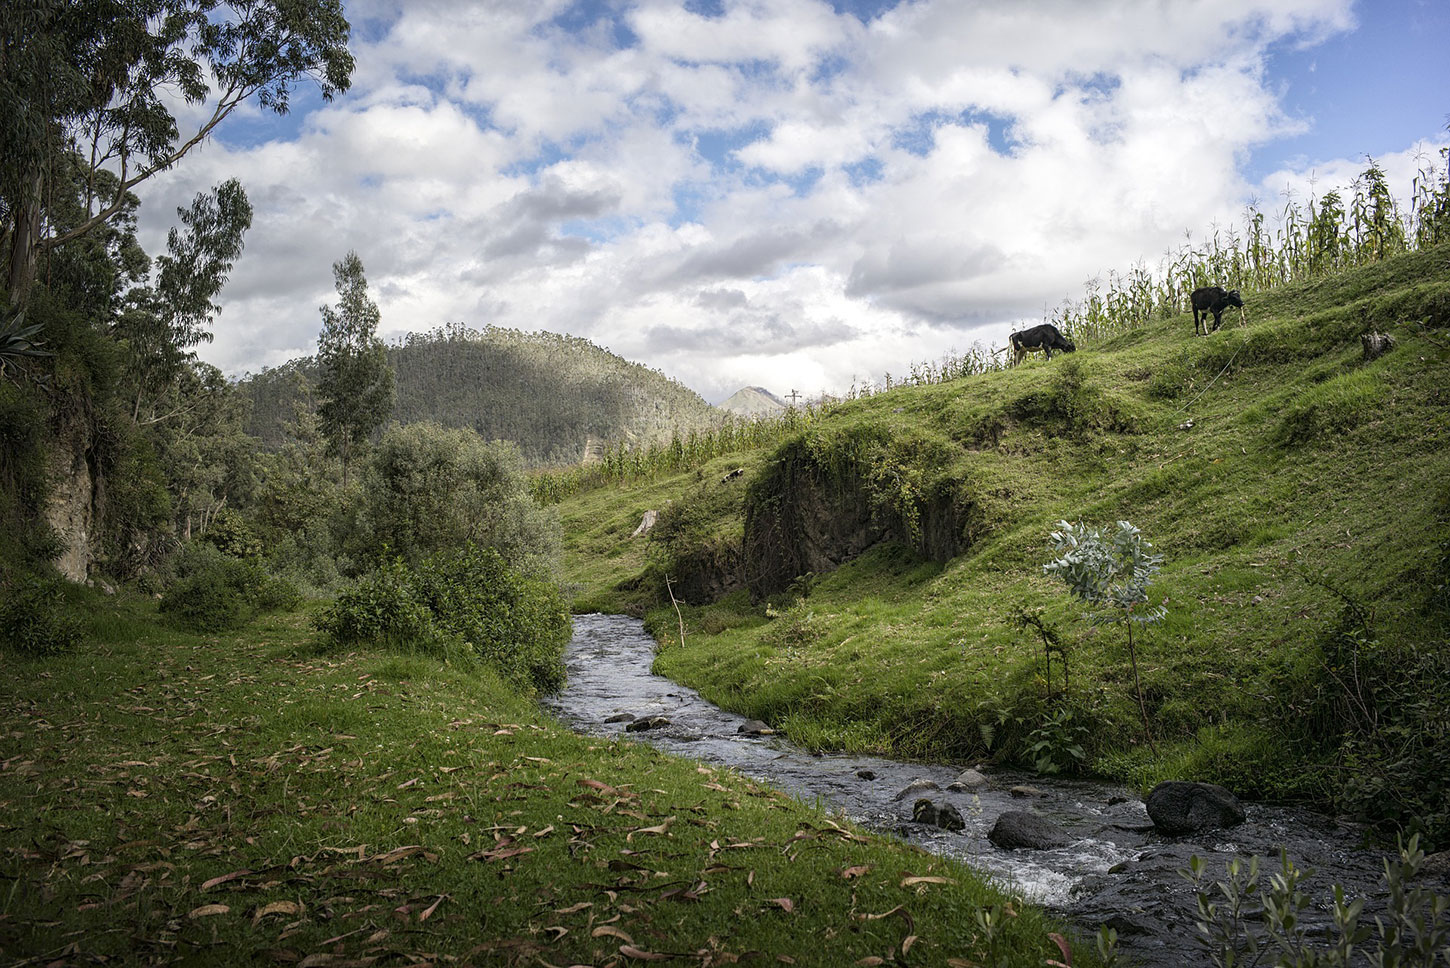 Creek through hilly pasture with cows